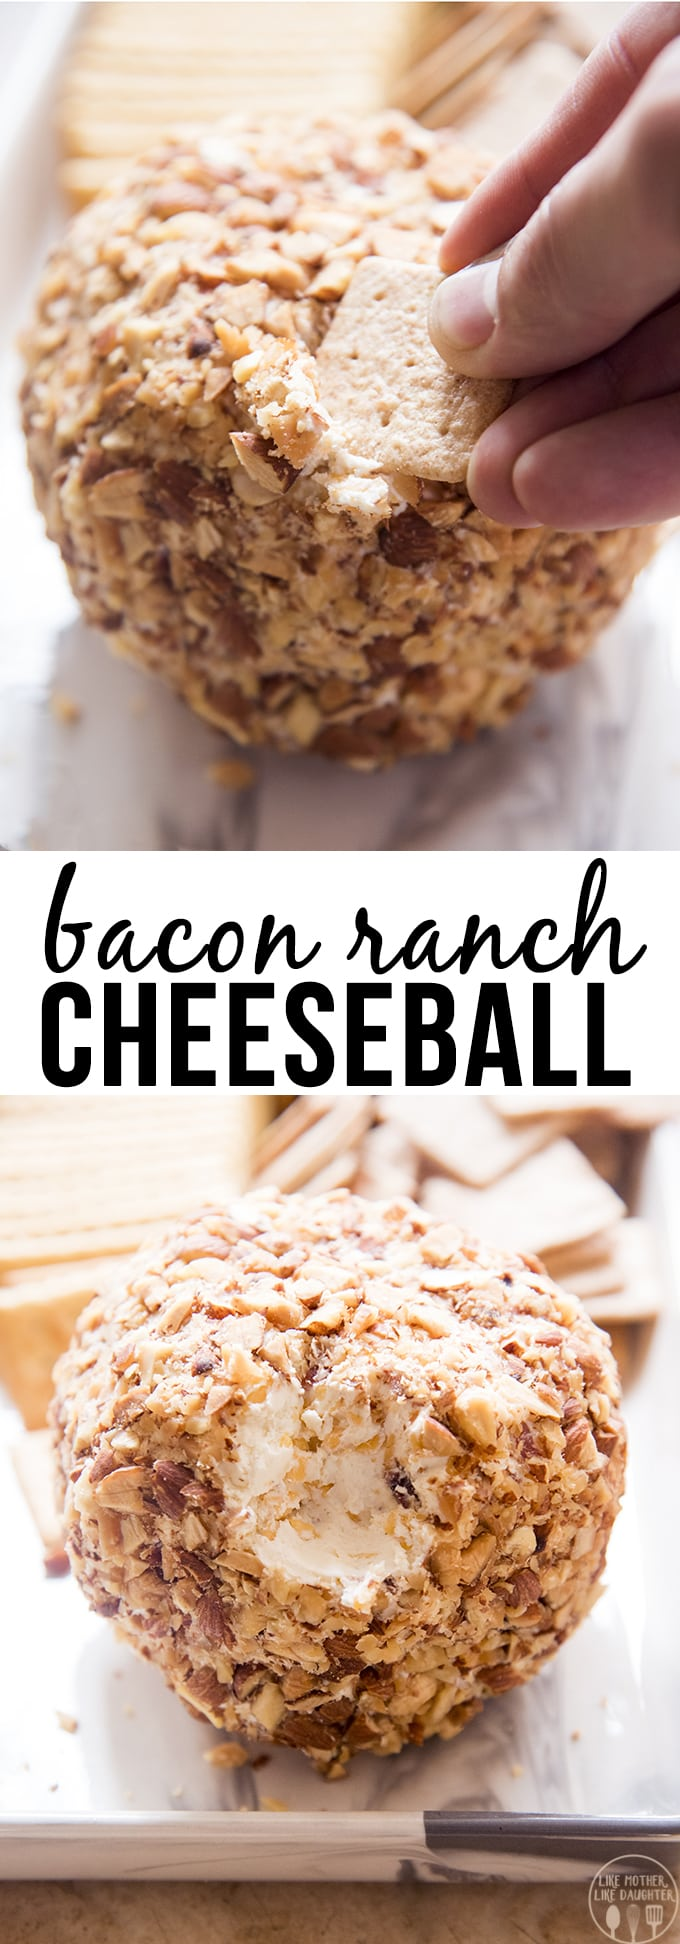 Bacon Ranch Cheese Ball is an amazing homemade cheese ball that is easy and delicious, it's a perfect crowd-pleaser, served with your favorite crackers!!